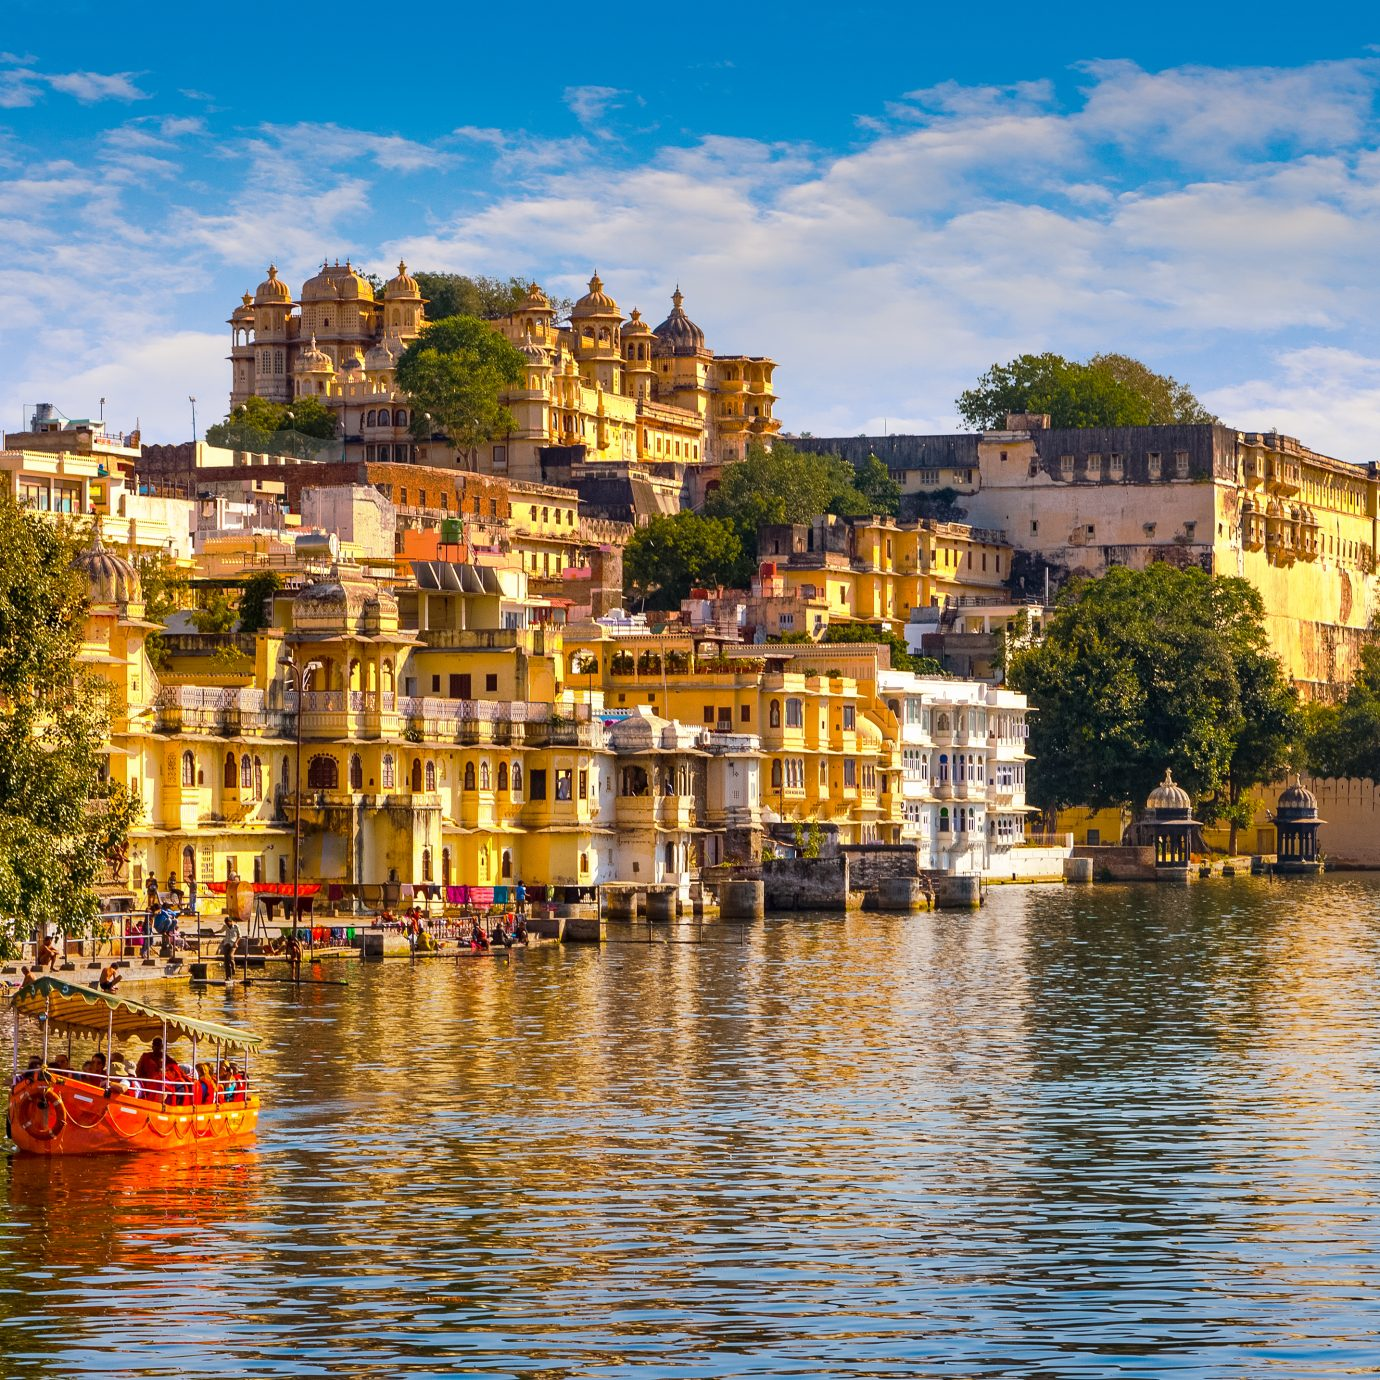 City Palace and Pichola lake in Udaipur, Rajasthan, India, Asia